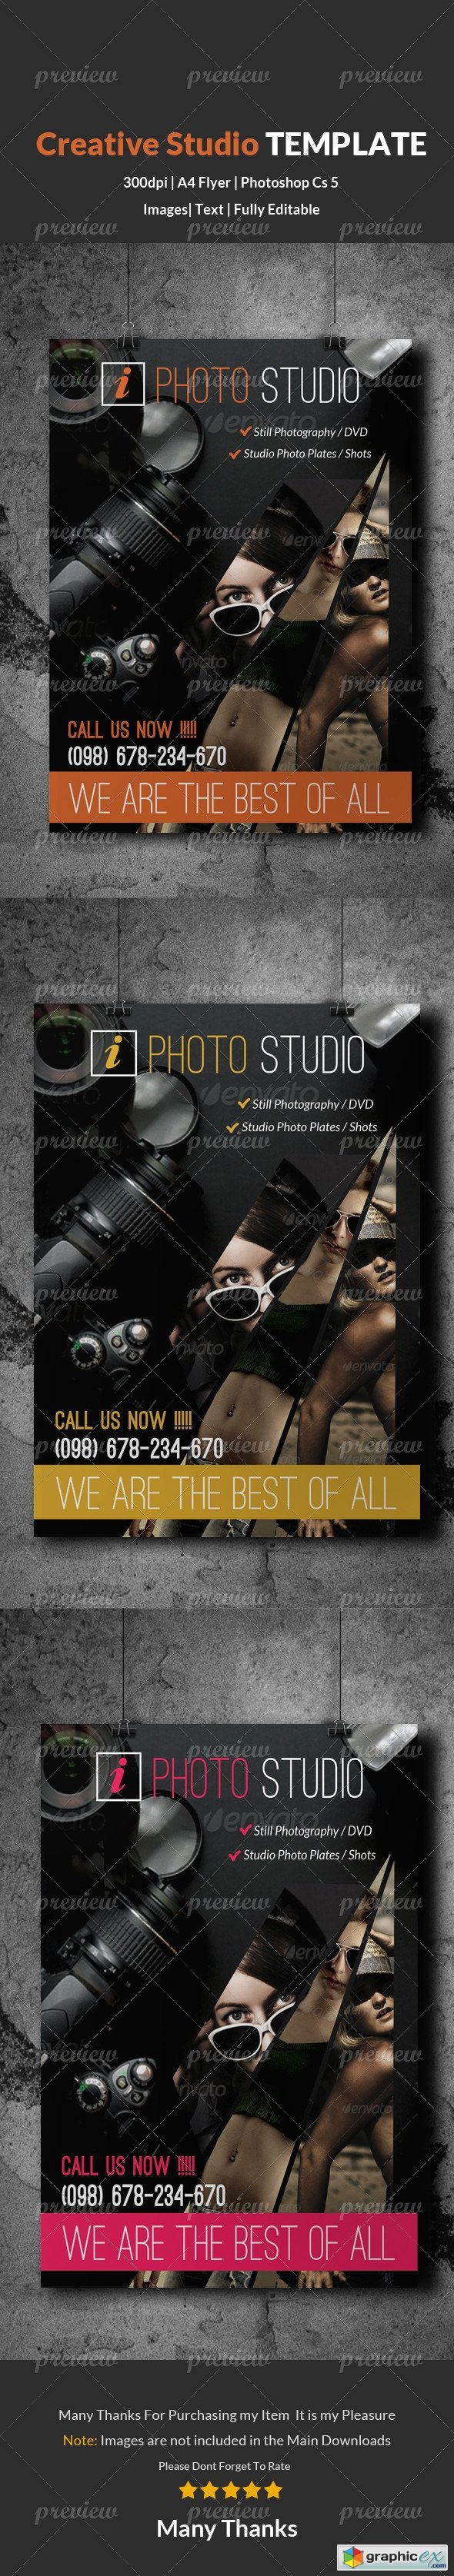 Photography & Photo Studio Flyer Template